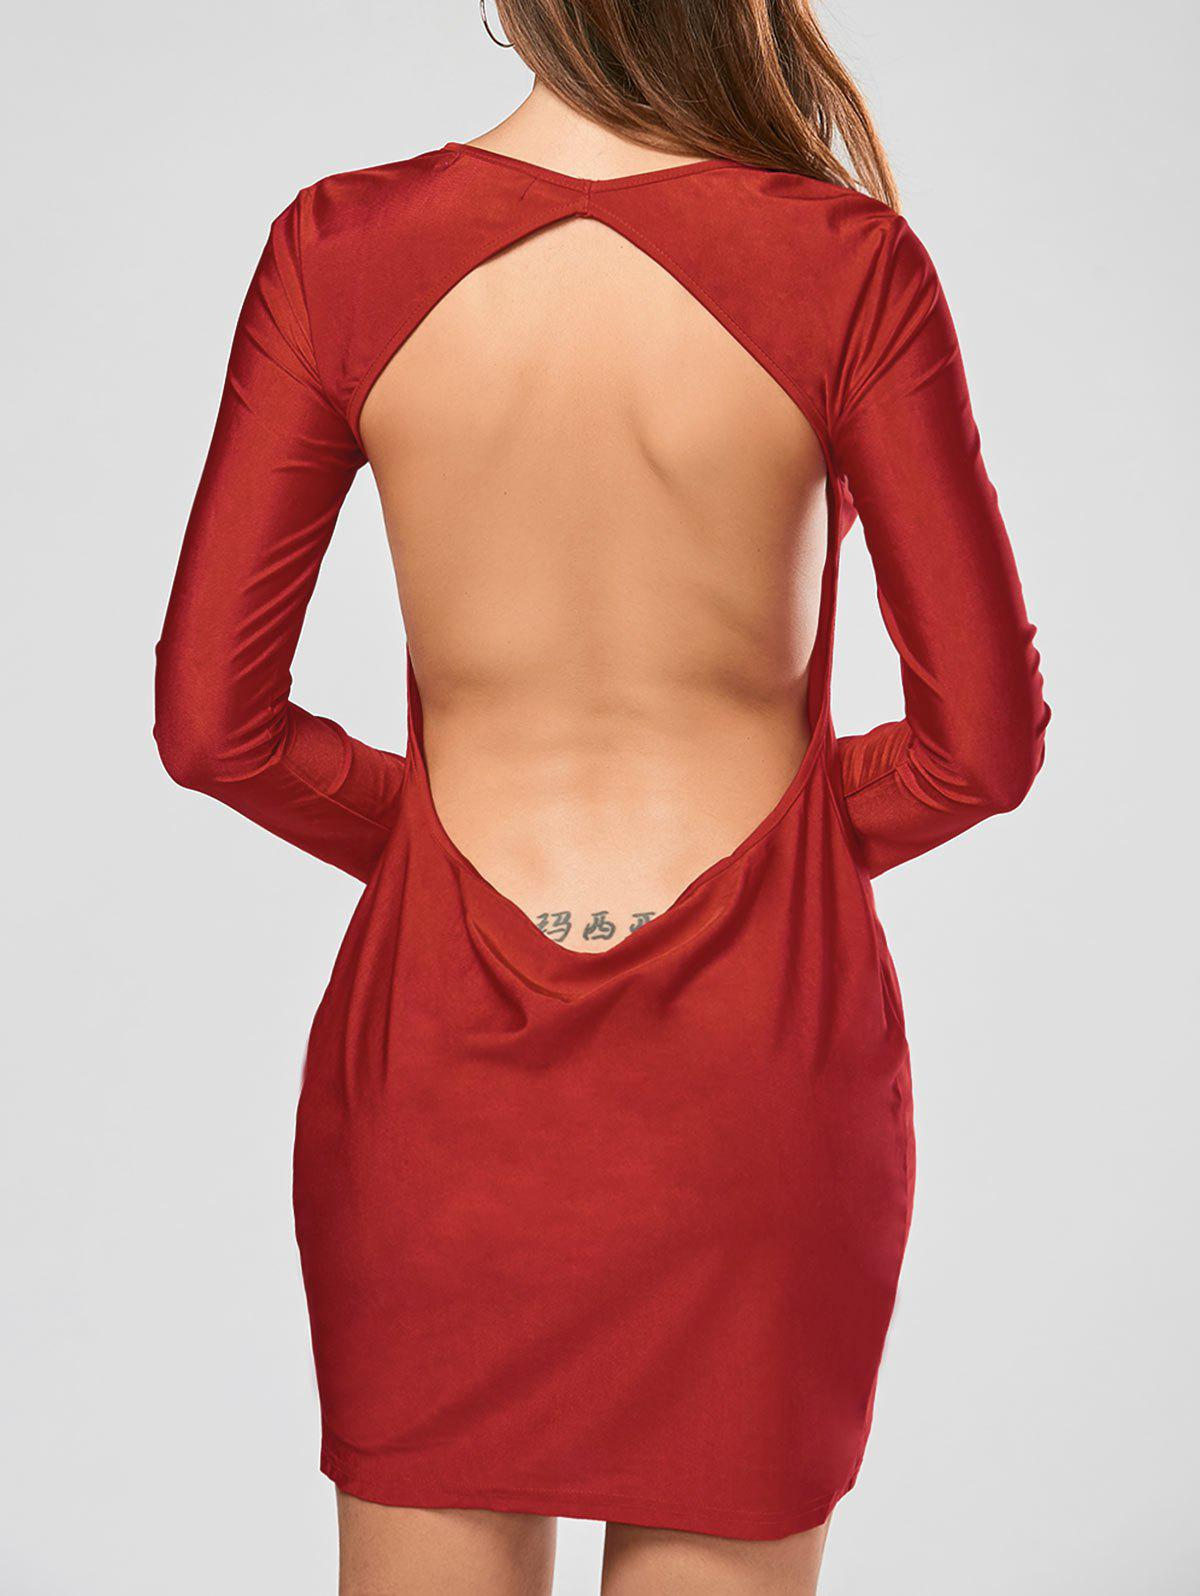 Scoop Collar Solid Color Backless Long Sleeves Women's Bodycon Dress - RED S